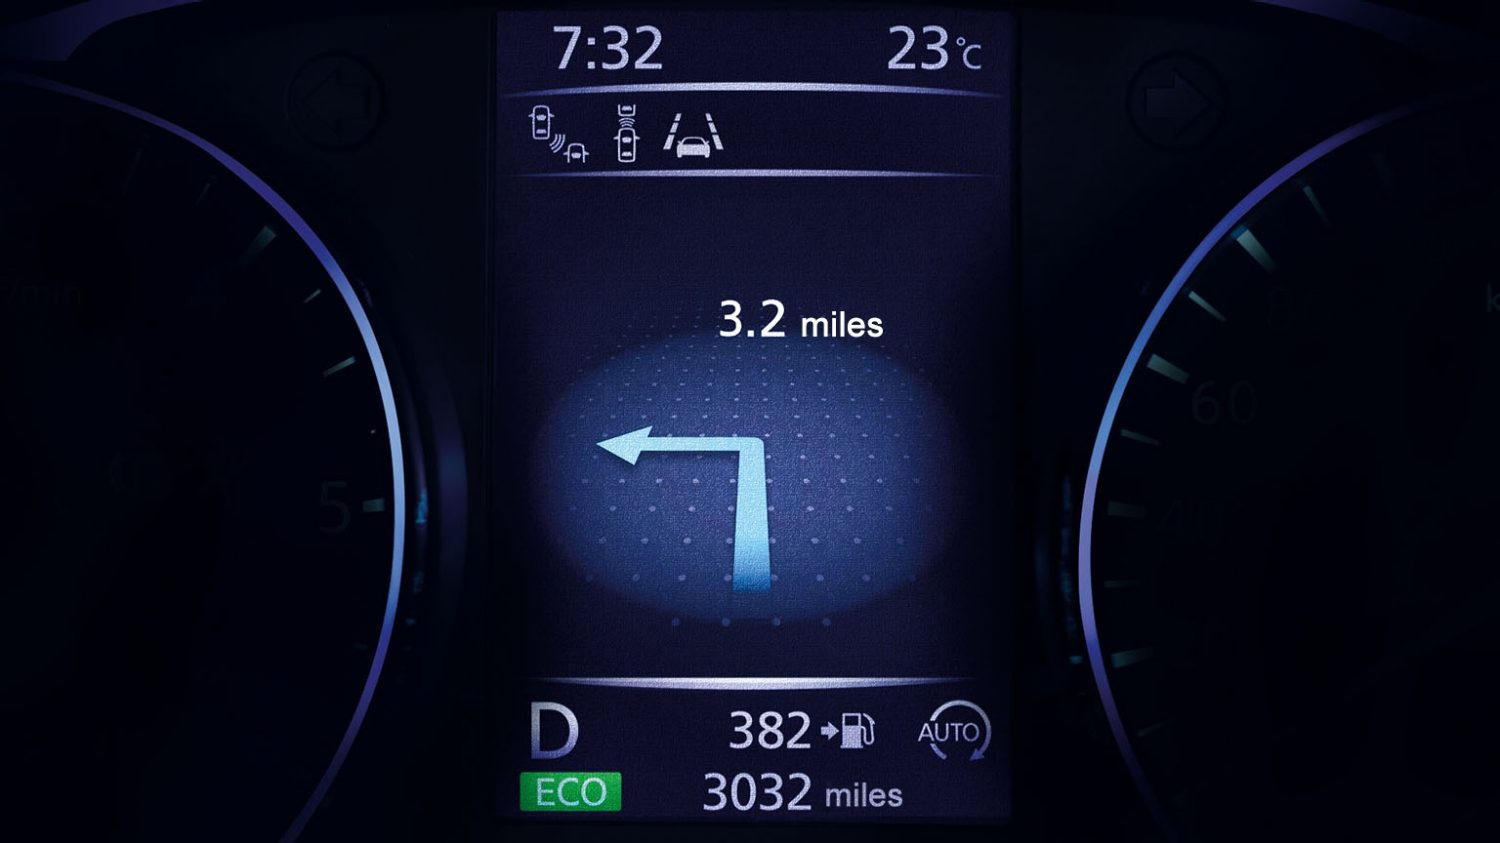 Nissan Qashqai | Advanced Drive-Assist Display